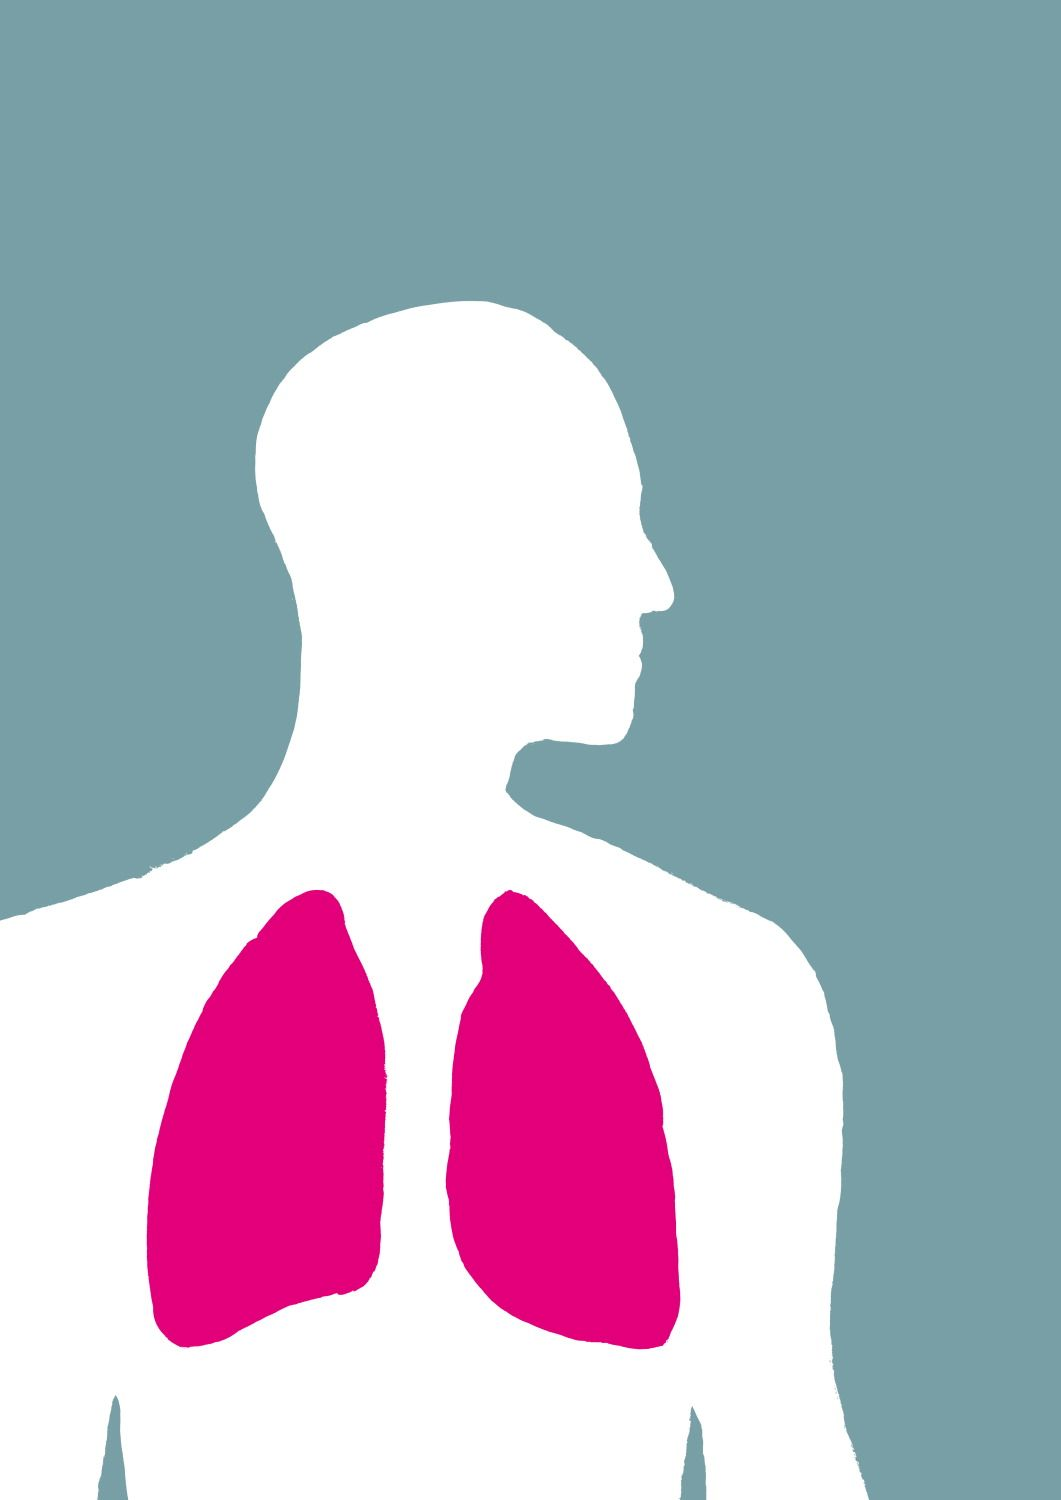 FIND OUT MORE - There are three main types of lung cancer; small cell lung cancer, non-small cell lung cancer and mesothelioma.  Go to our website for information about these different types and how they are treated: http://www.cancerresearchuk.org/cancer-help/type/lung-cancer/